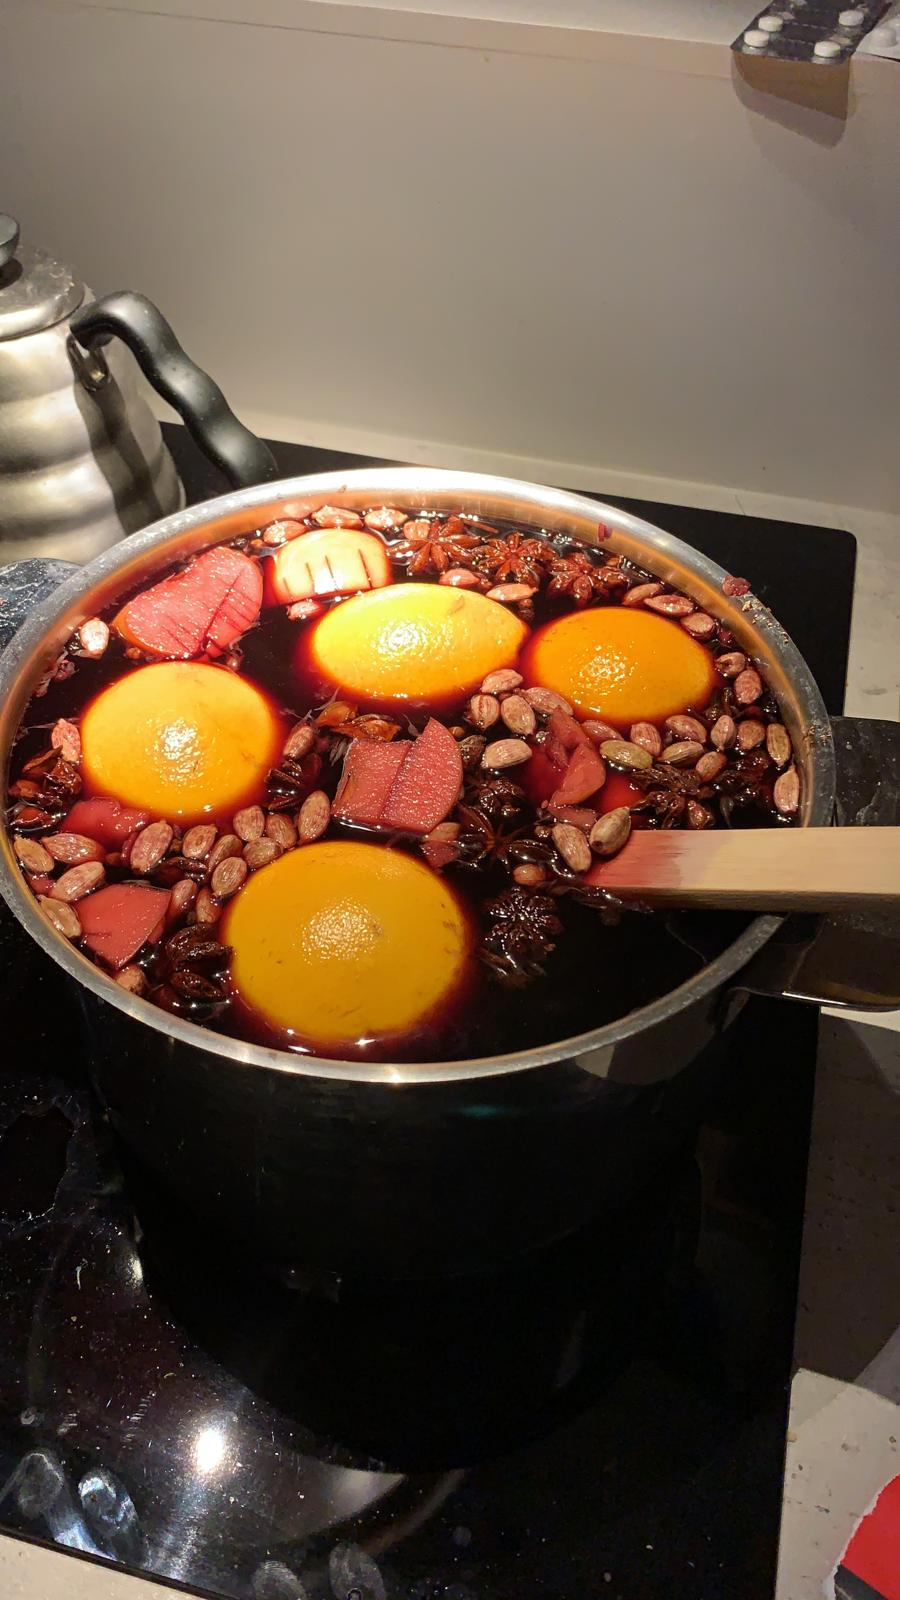 A big pot on a stove, filled with red wine with oranges and spices